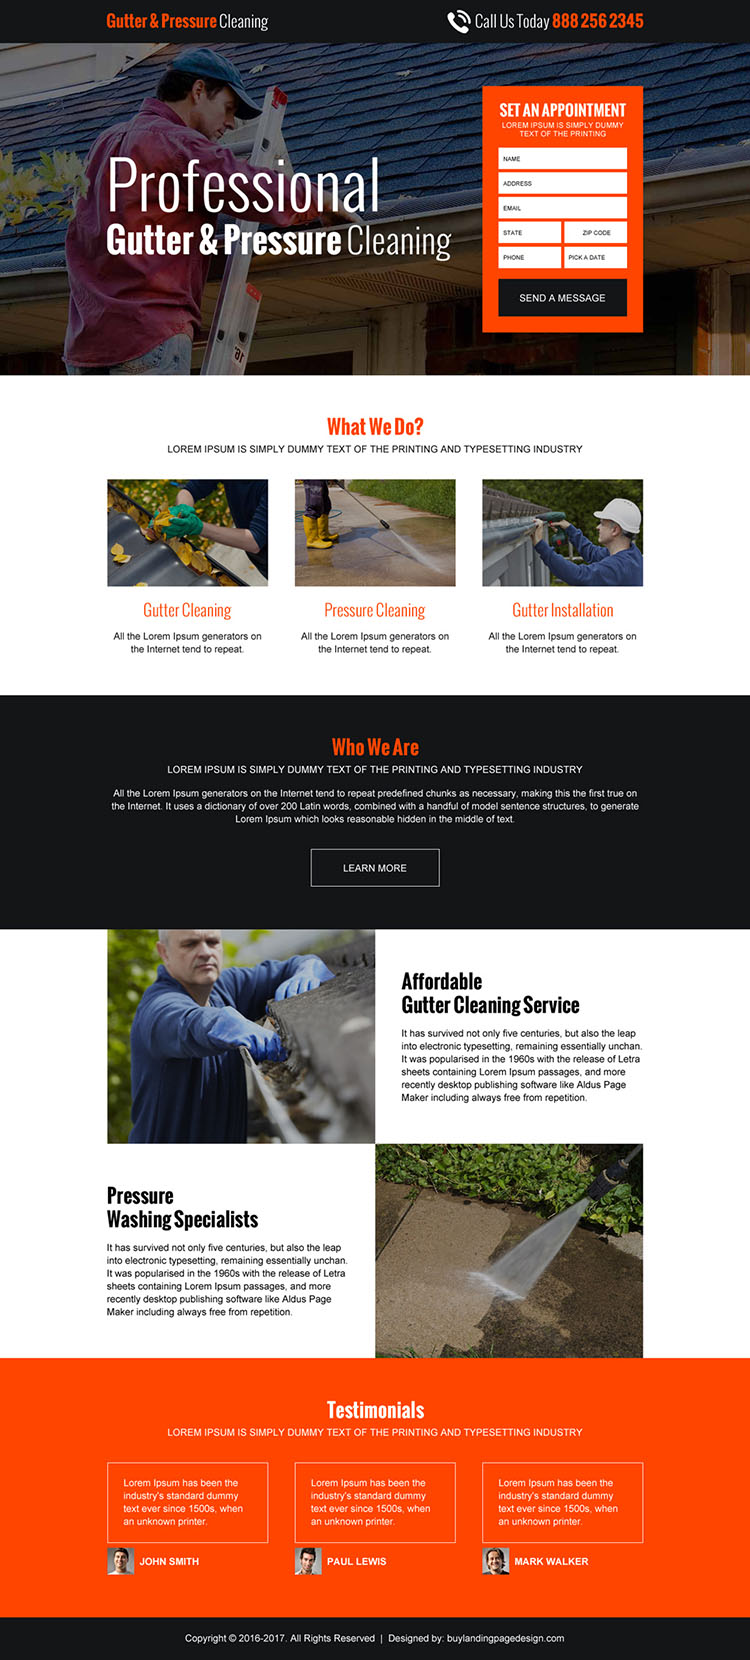 gutter pressure cleaning lead generating landing page https://www.buylandingpagedesign.com/buy/gutter-pressure-cleaning-lead-generating-landing-page/2203